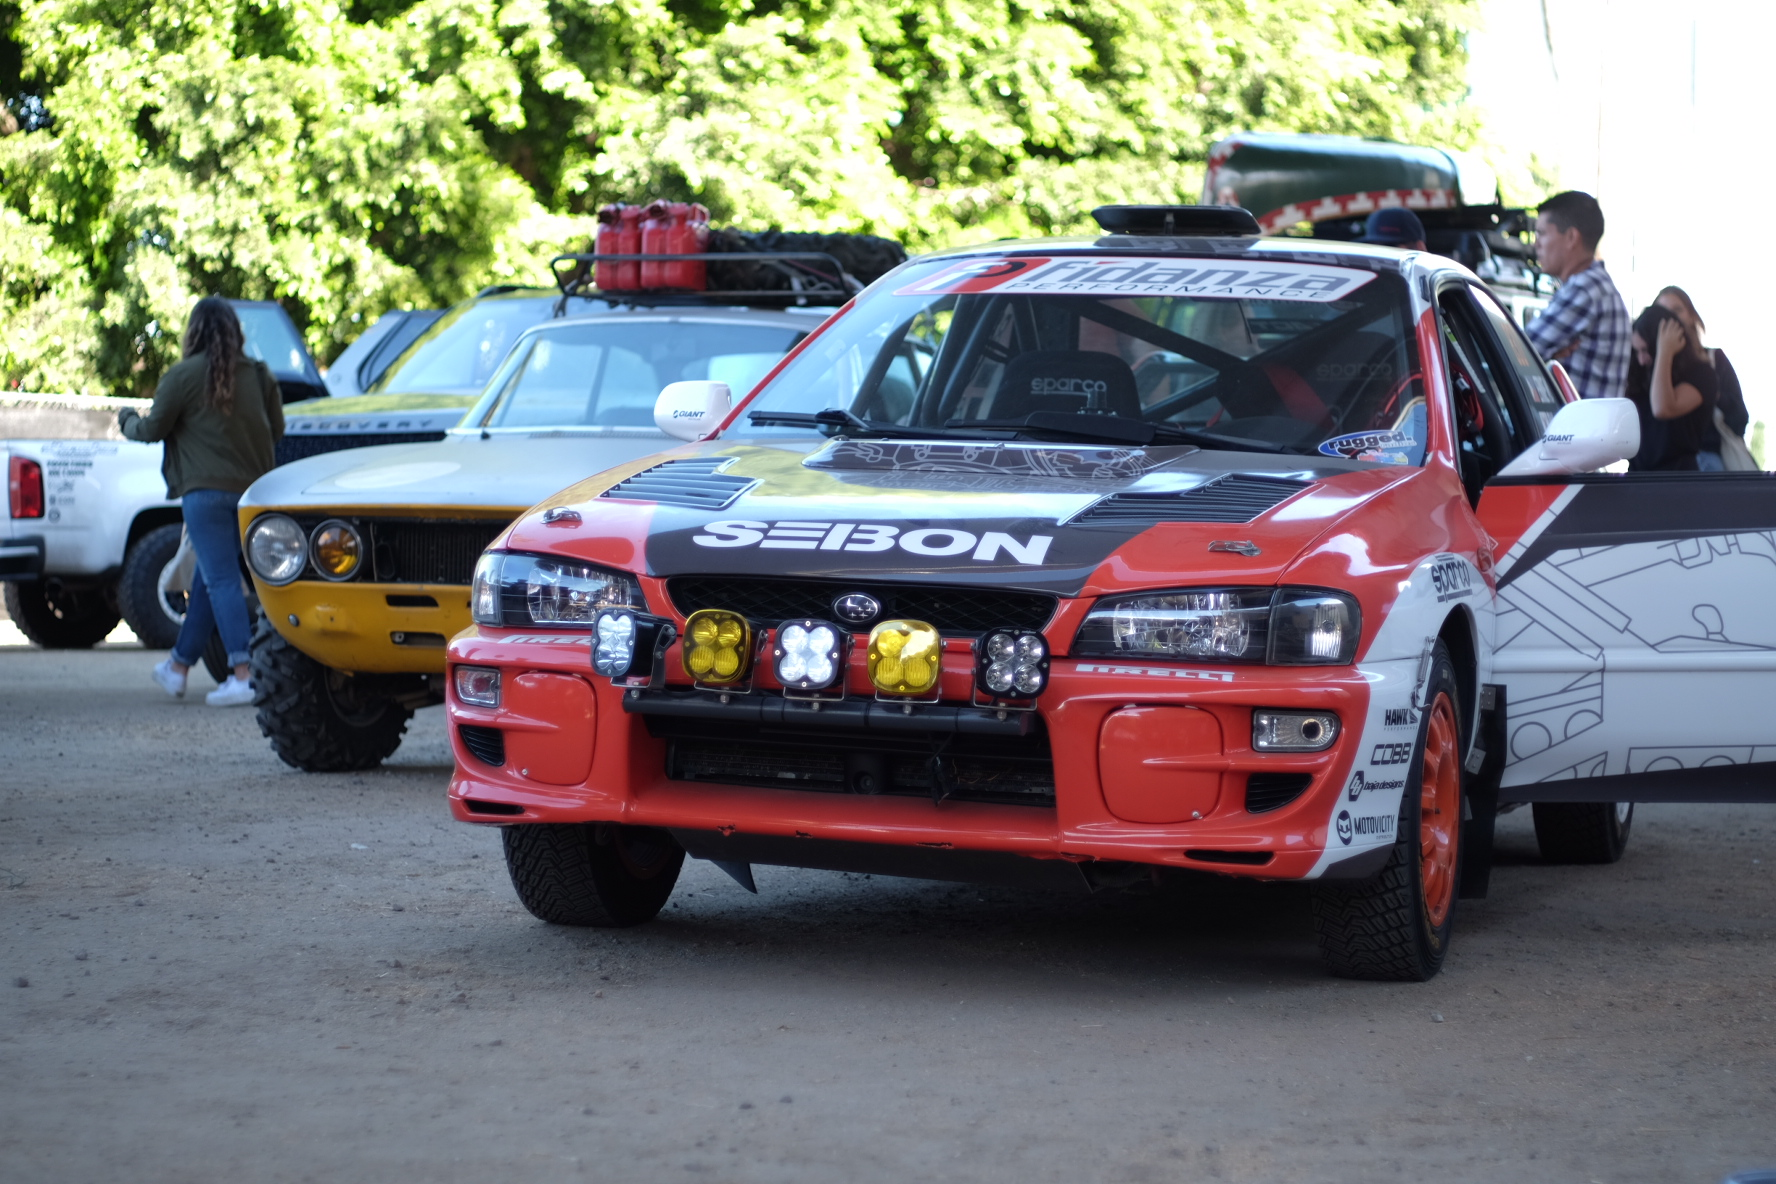 Ernie Manansala Subaru 2.5 RS SCCA Rally Car